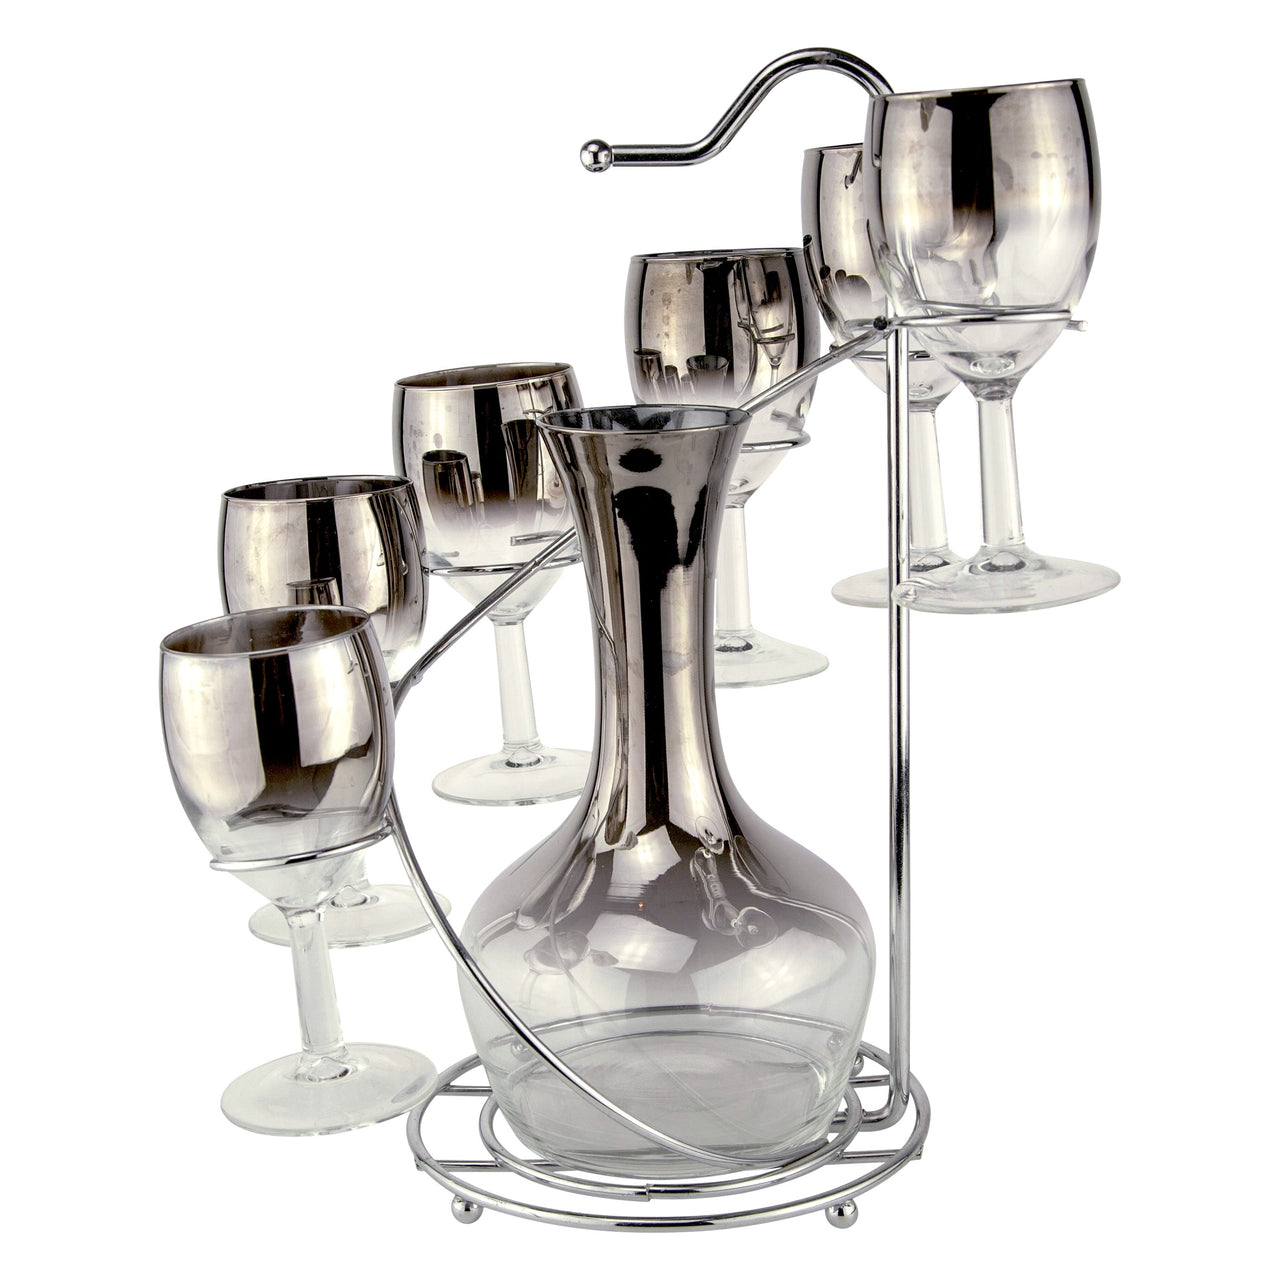 Mercury Fade Wine Decanter Spiral Caddy | The Hour Vintage